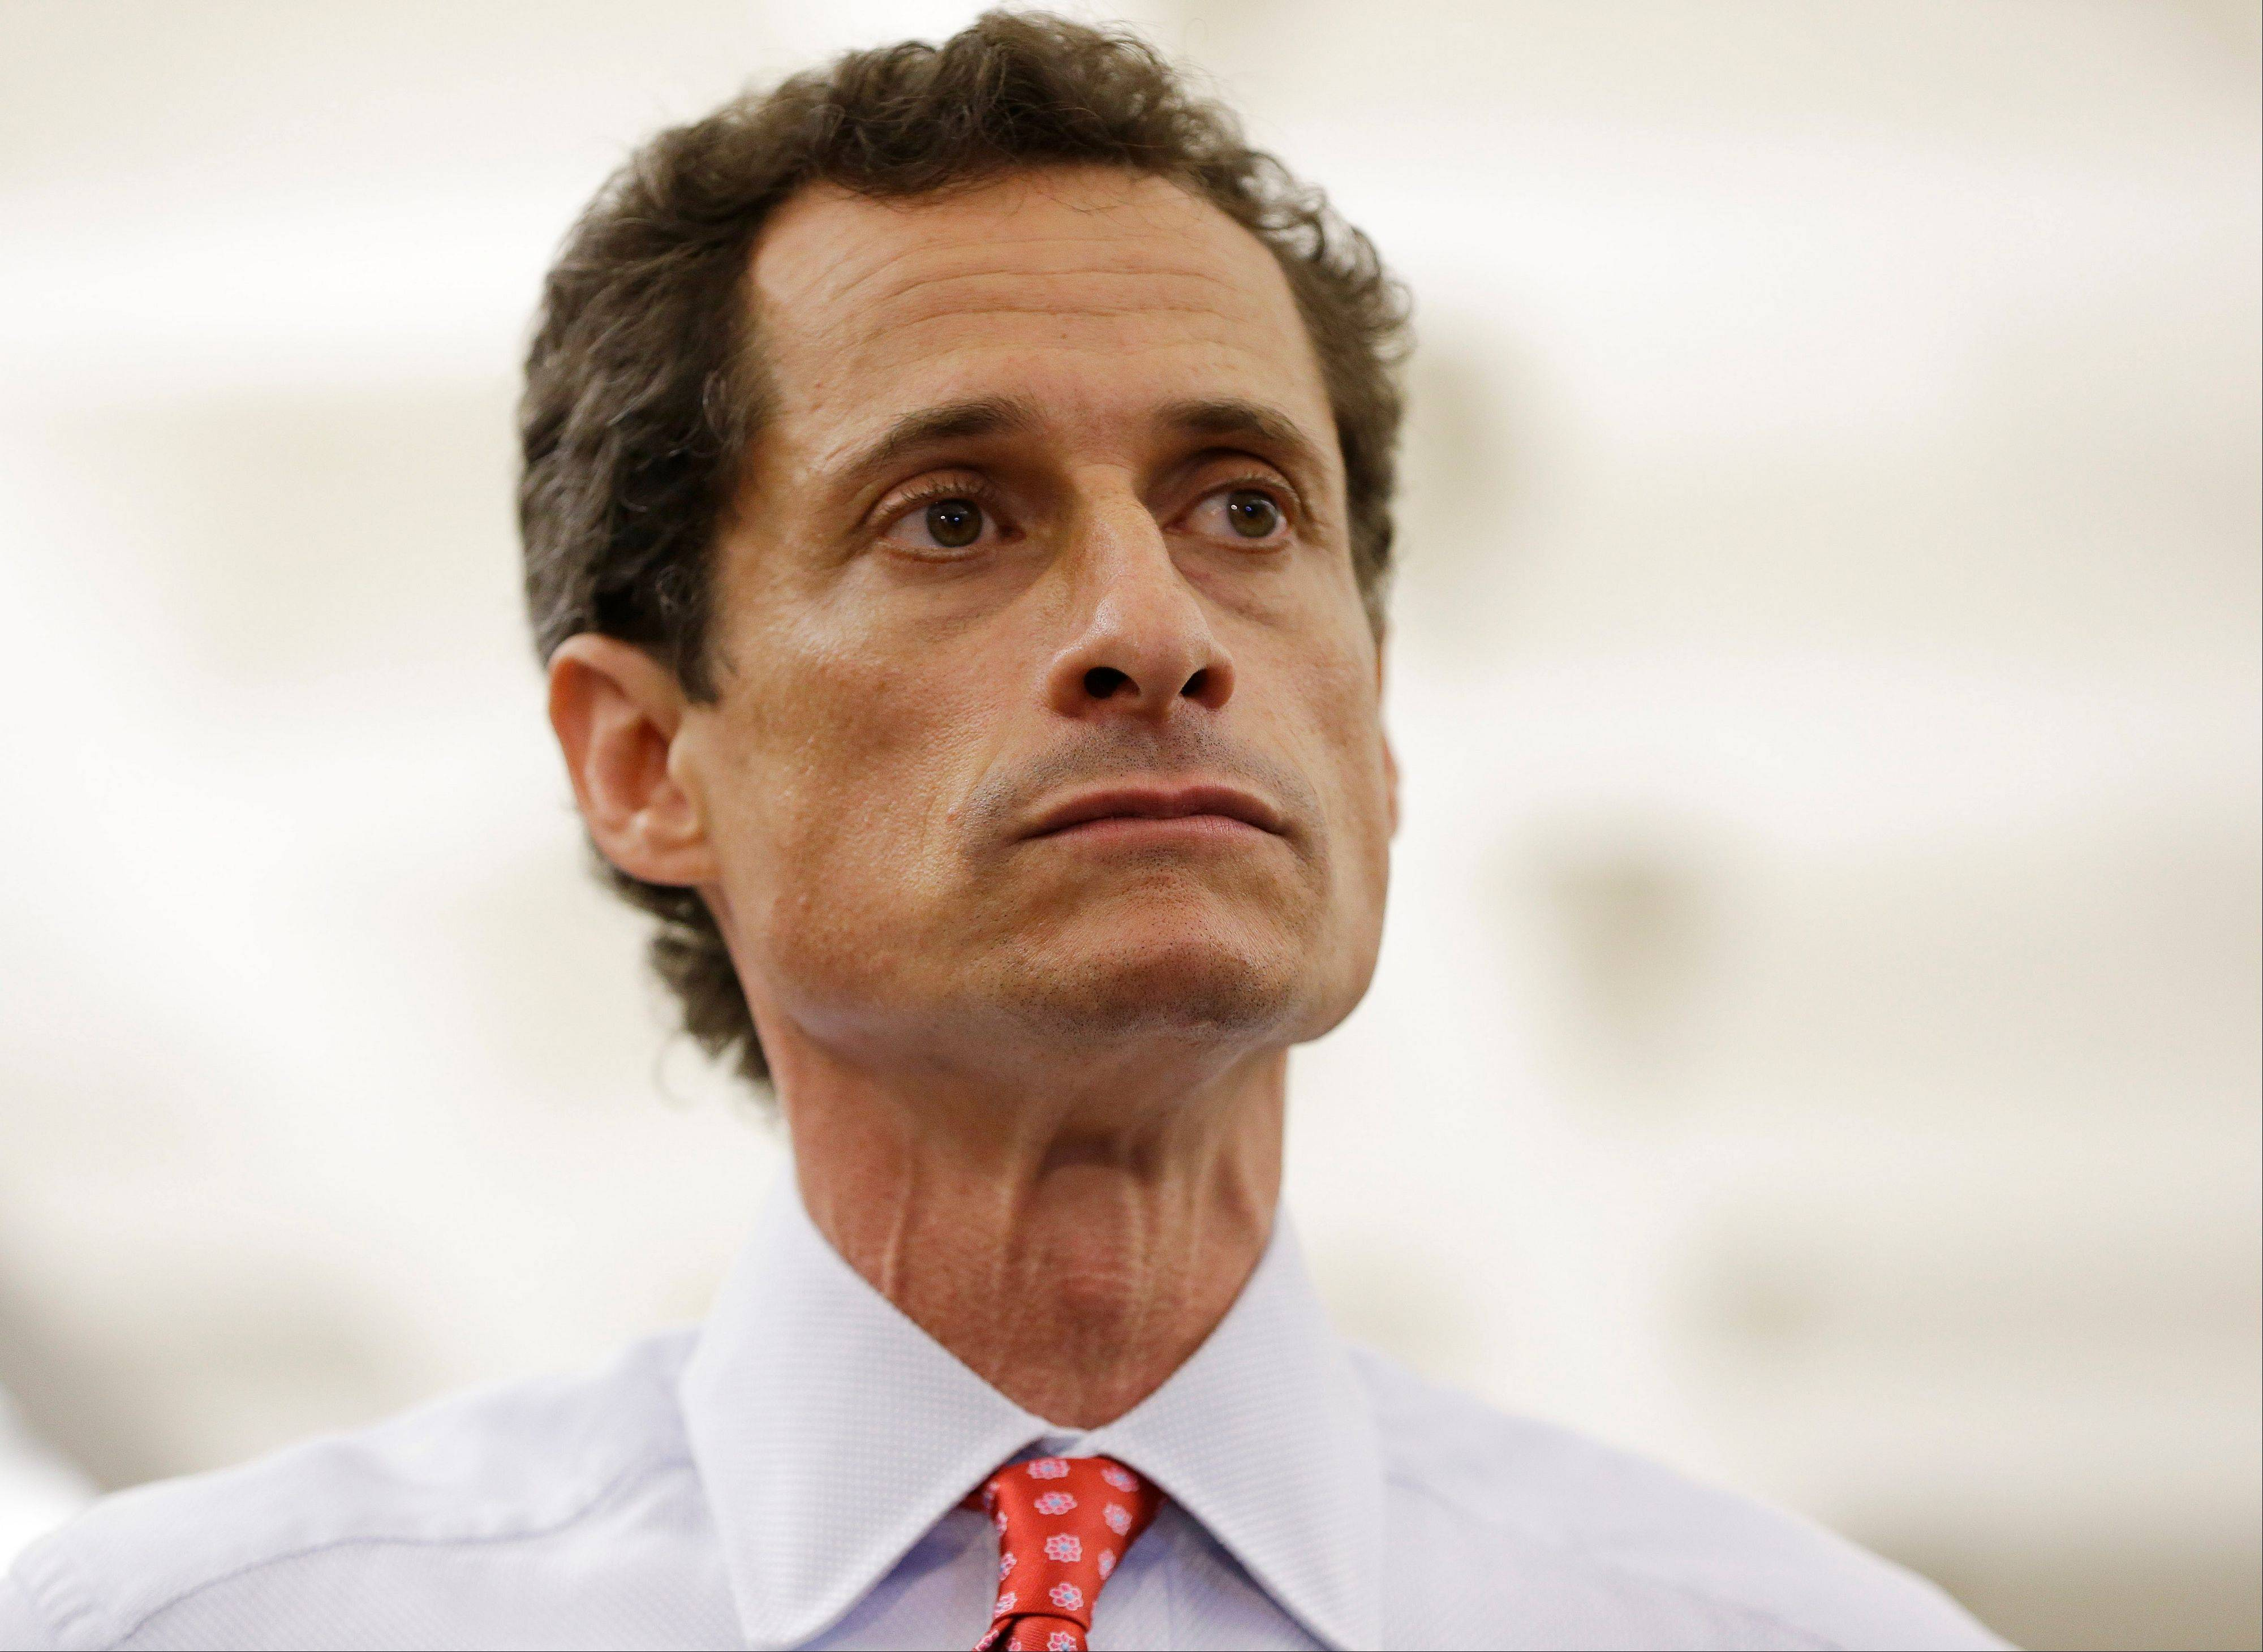 New York City Mayoral candidate Anthony Weiner takes reporters questions Tuesday during a news conference at the Gay Men's Health Crisis headquarters in New York. The former congressman says he's not dropping out of the New York City mayoral race in light of newly revealed explicit online correspondence with a young woman.